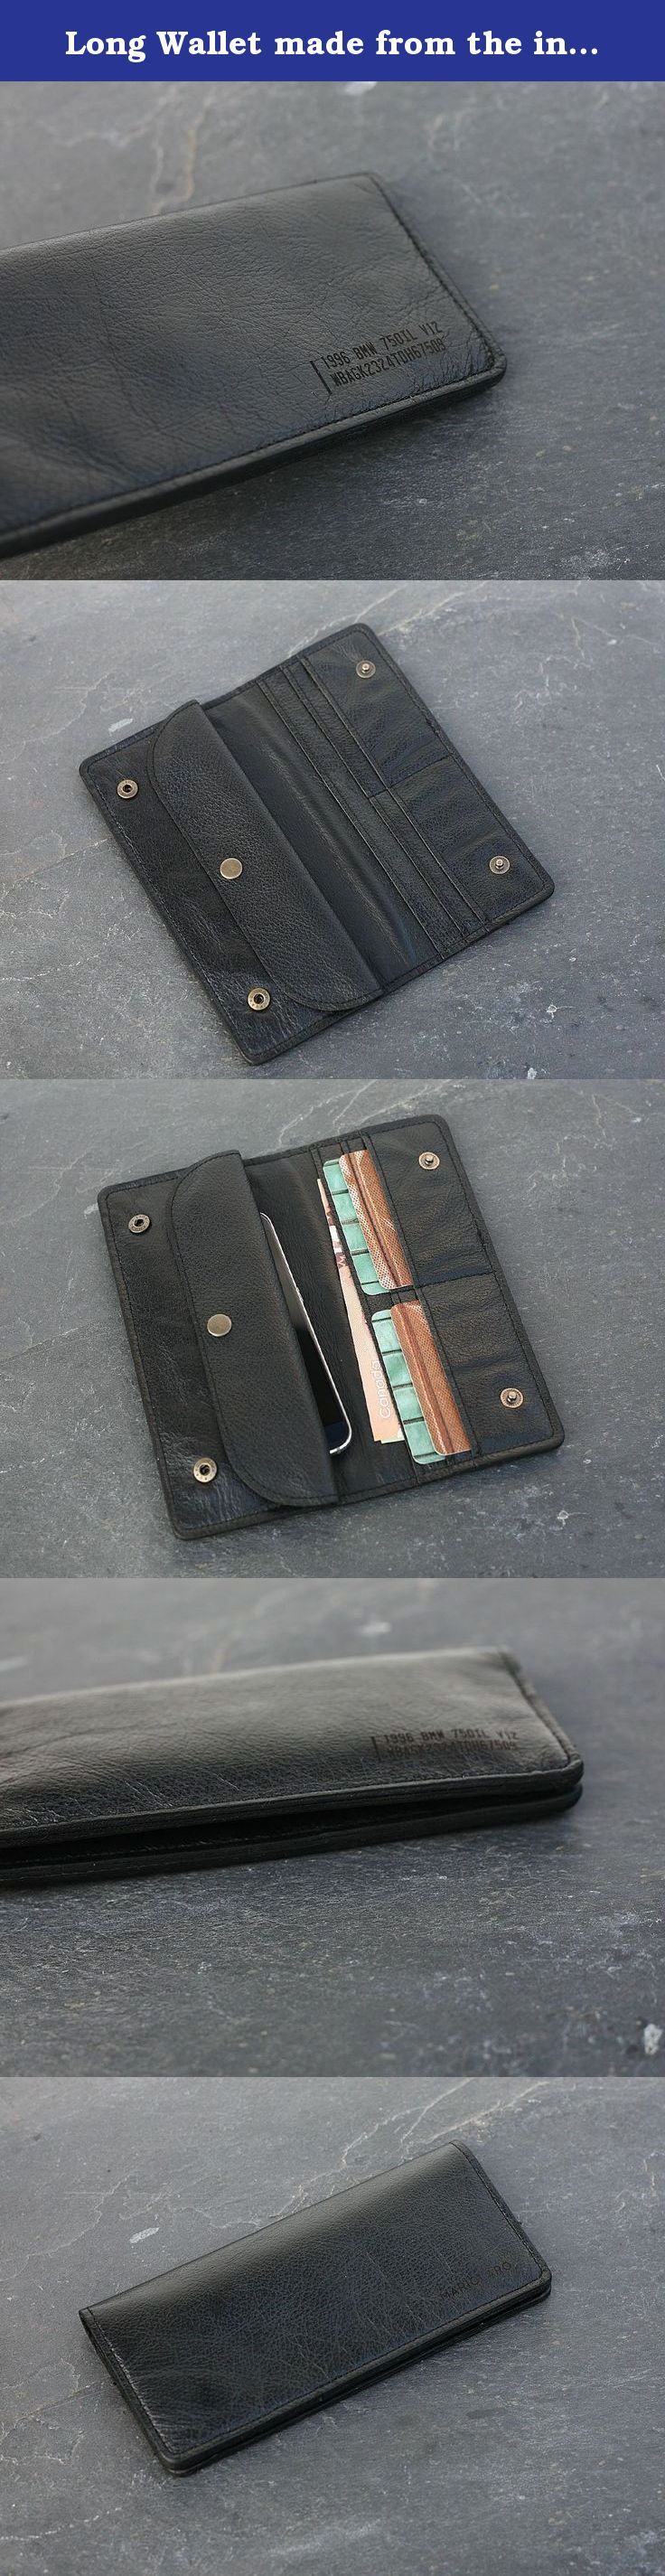 Long Wallet made from the interior of a 1996 BMW 750IL V12. This unique wallet is made from the original leather seats of a 1996 BMW 750IL V12. Every design from our Drive Collection is a one of a kind piece transforming vintage luxury car interiors in contemporary accessory art. Features: Two full-length bill compartments (fits also an I phone), 4 credit card pockets with space for up to 12 cards, Compartment for coins, 8 inch x 3 ½.